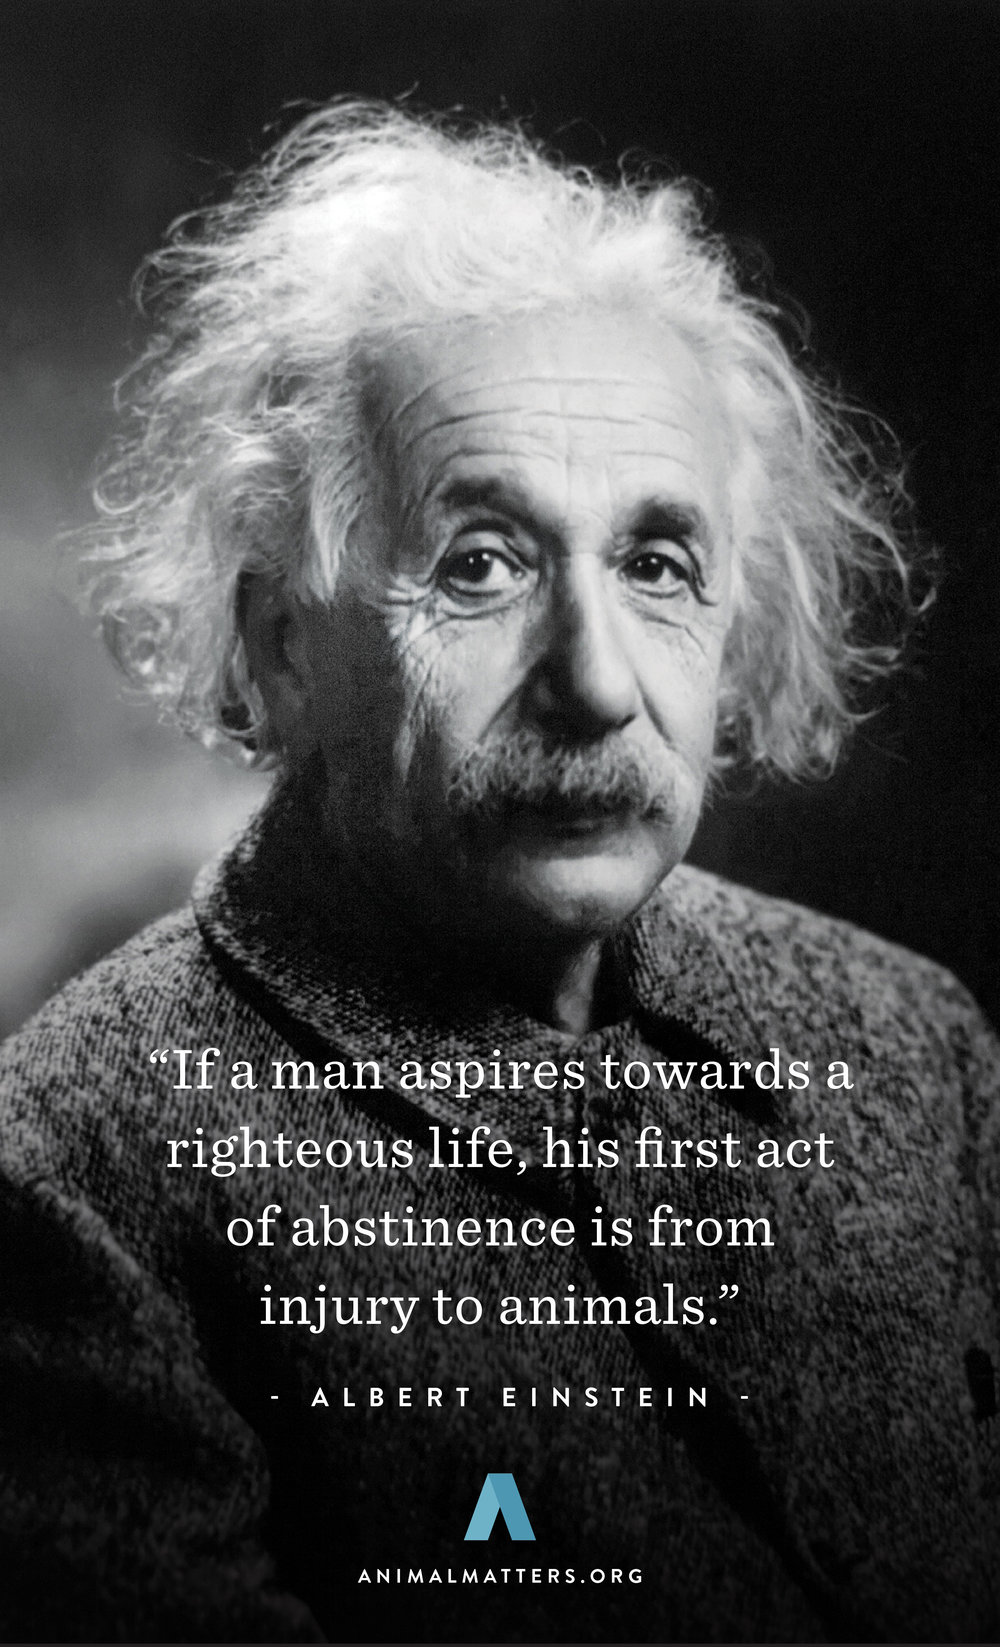 Animal-Matters-Einstein-Quote-Rights-Poster-Ad-Design.jpg